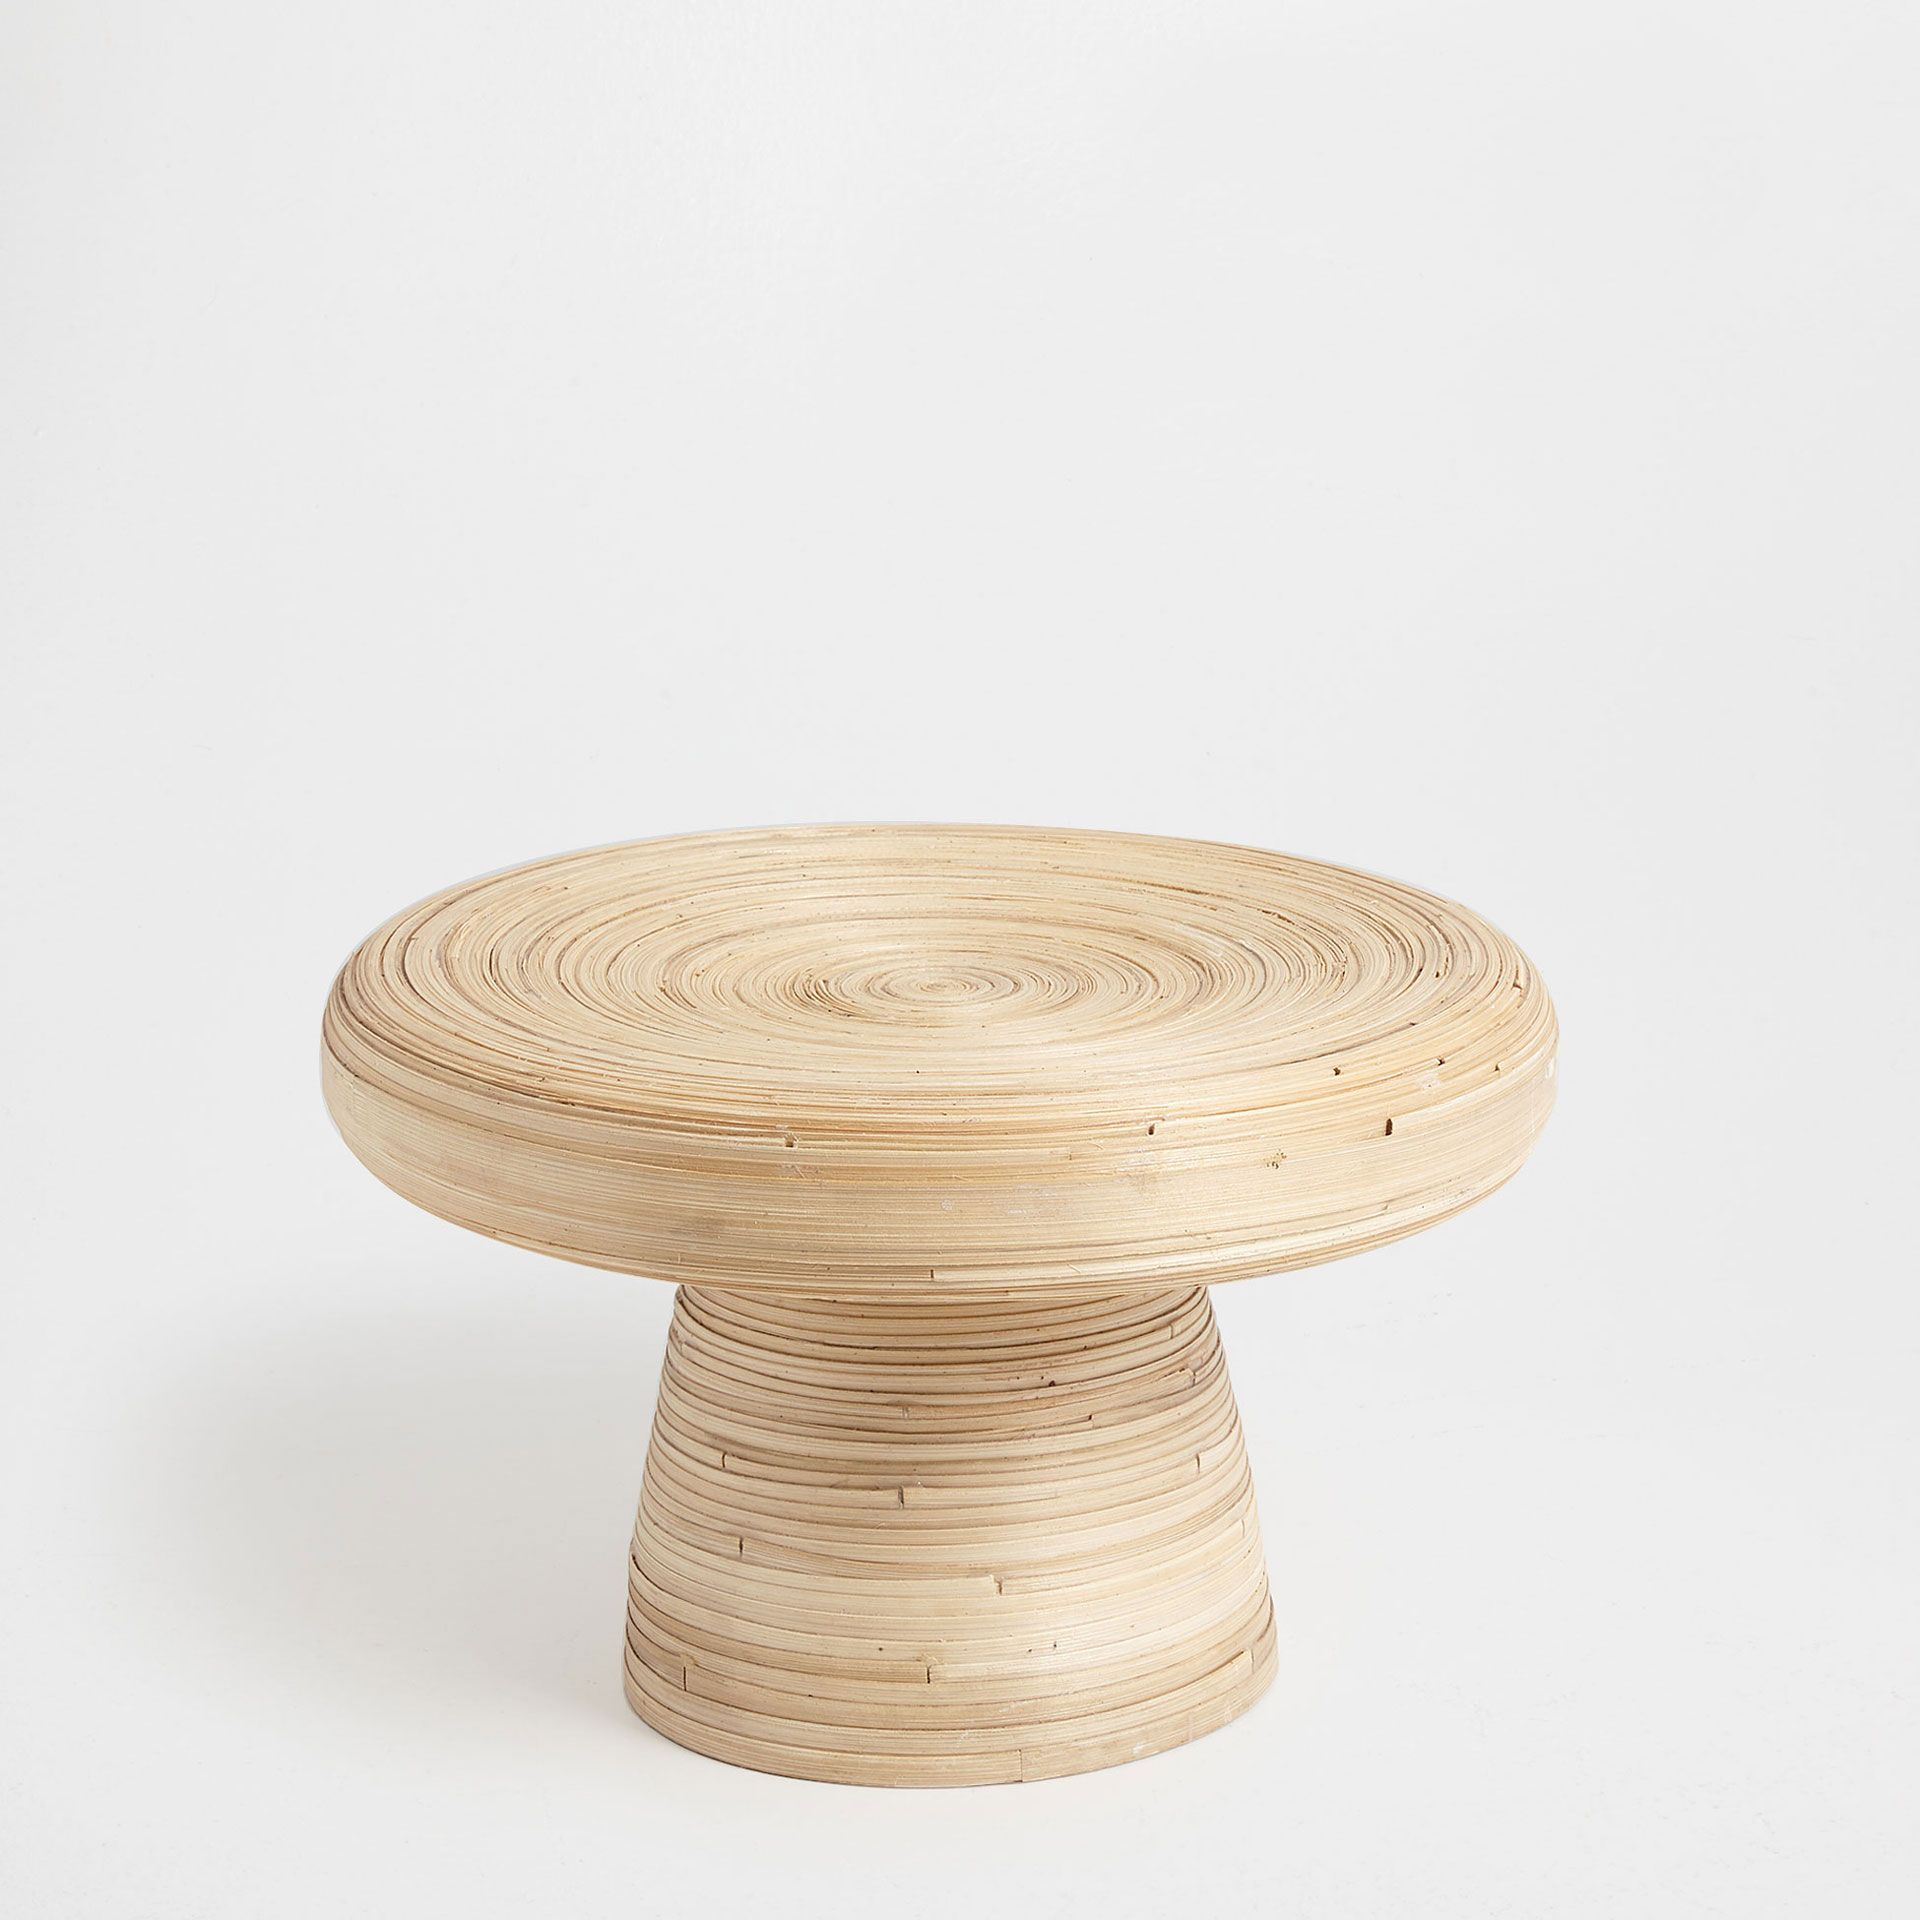 Little Natural Coloured Bamboo Table Furniture Decoration Zara Home United States Of America Bamboo Table Bamboo Table